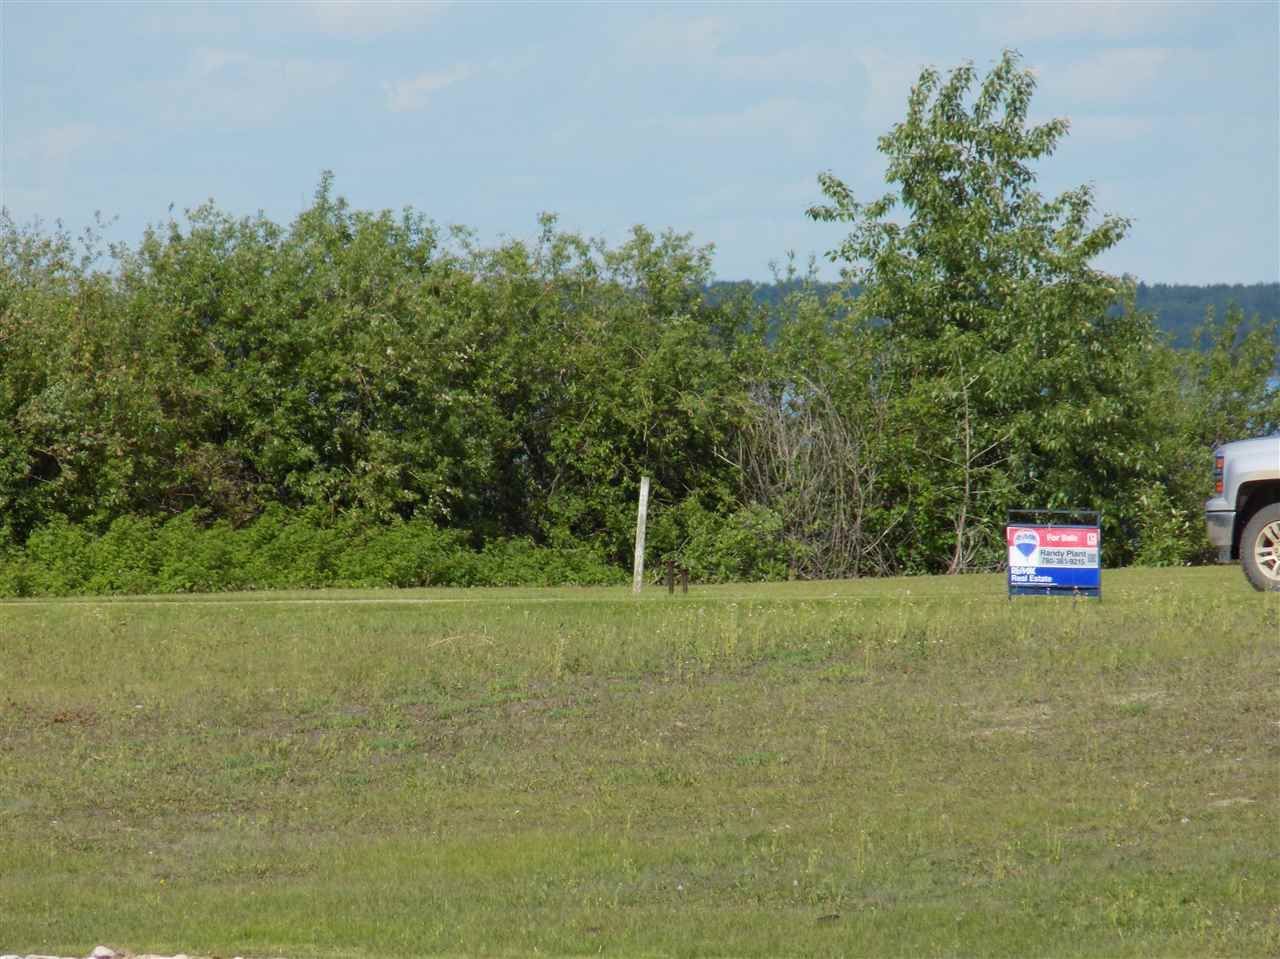 Main Photo: 1 SUNSET HARBOUR: Rural Wetaskiwin County Rural Land/Vacant Lot for sale : MLS®# E4161228